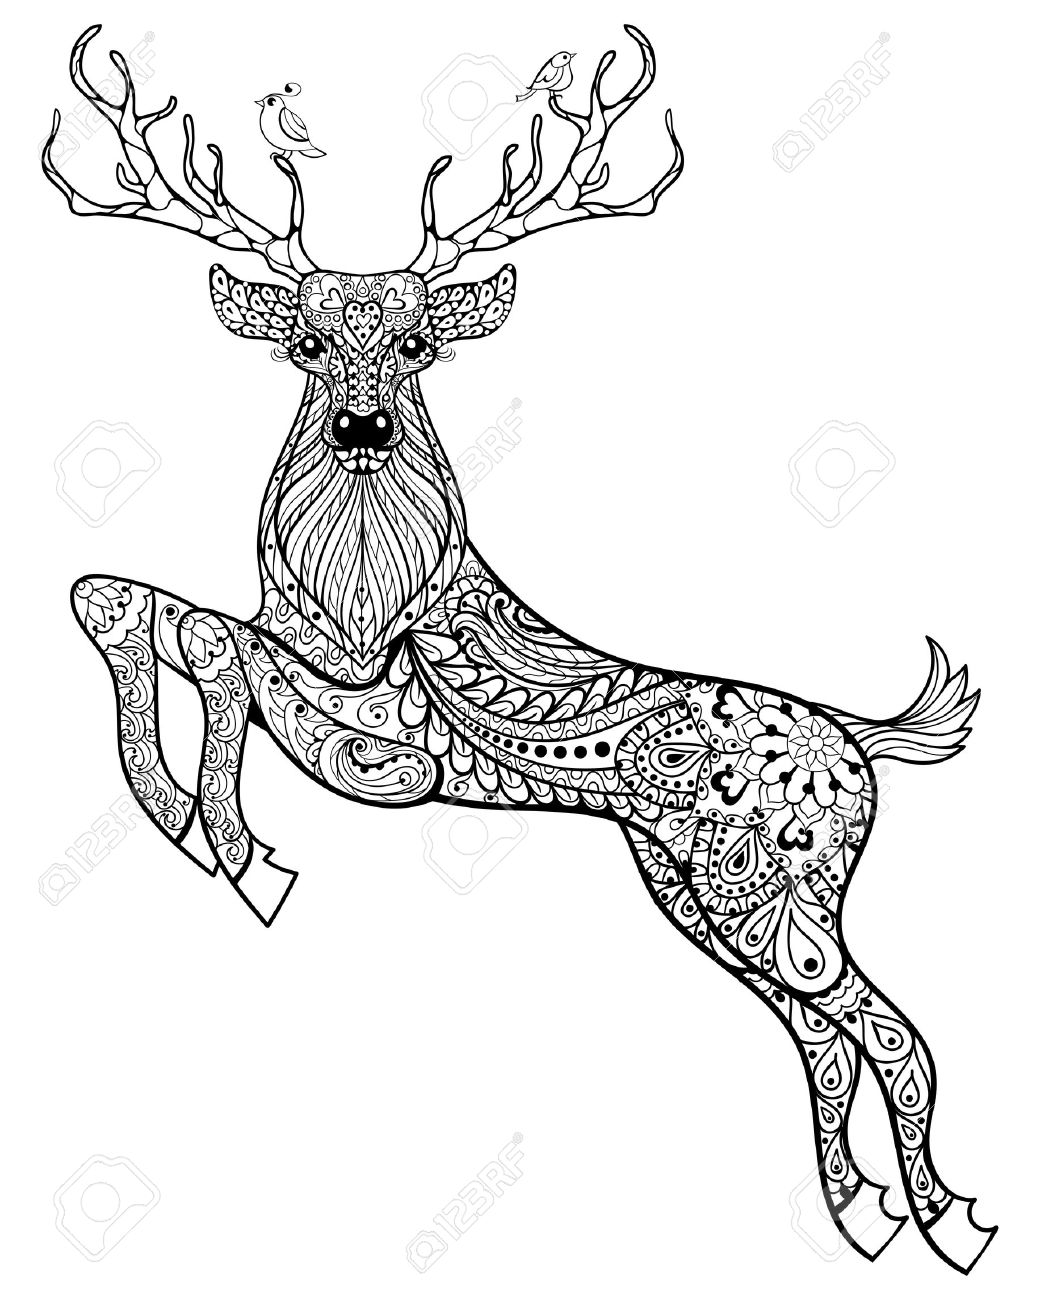 Hand Drawn Magic Horned Deer With Birds For Adult Anti Stress Coloring Page High Details